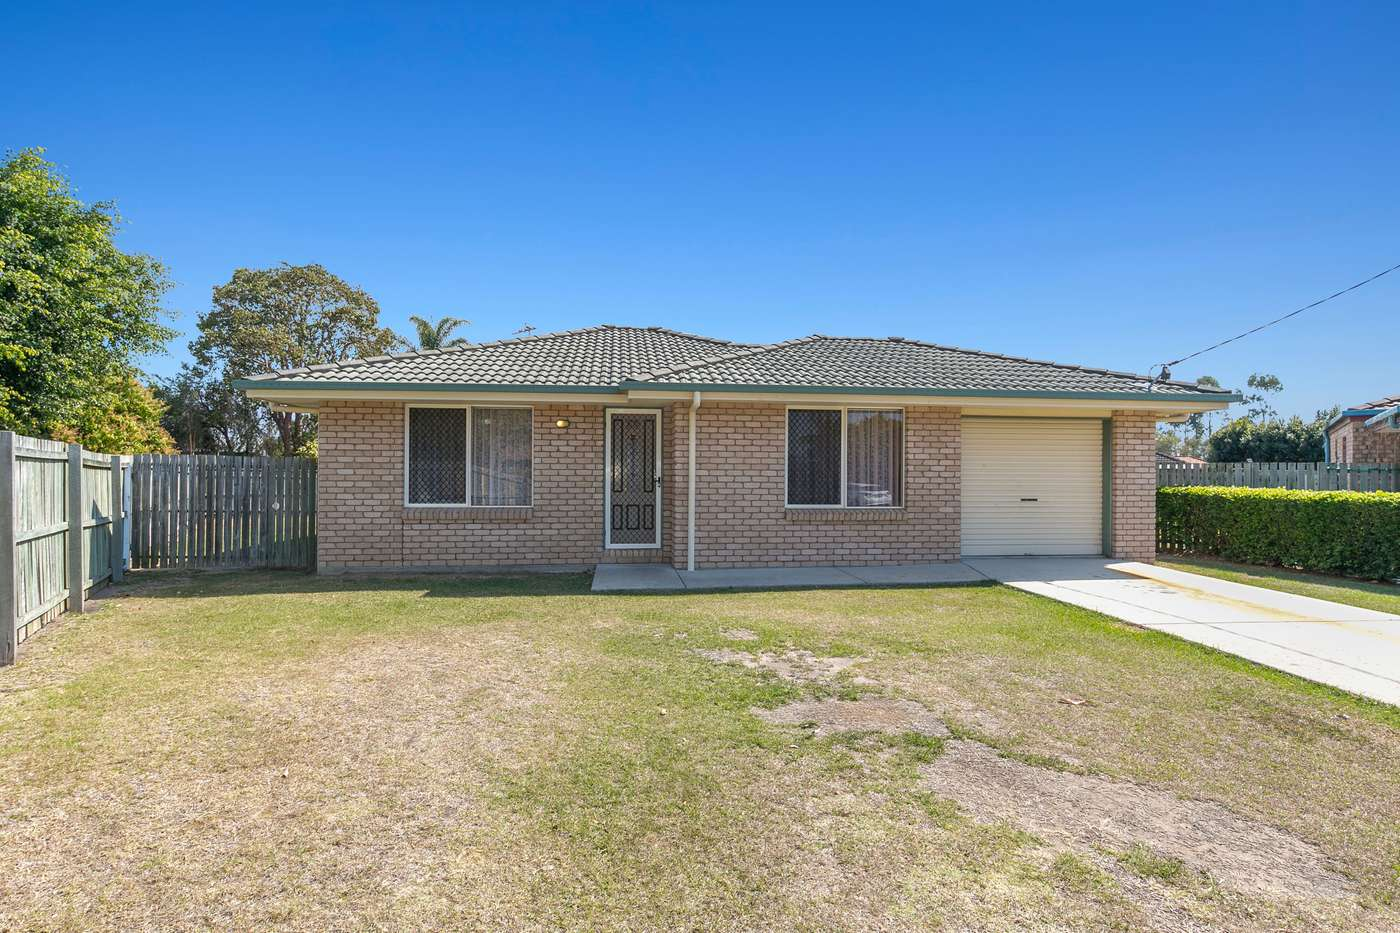 Main view of Homely house listing, 20 Headland Place, Deception Bay, QLD 4508